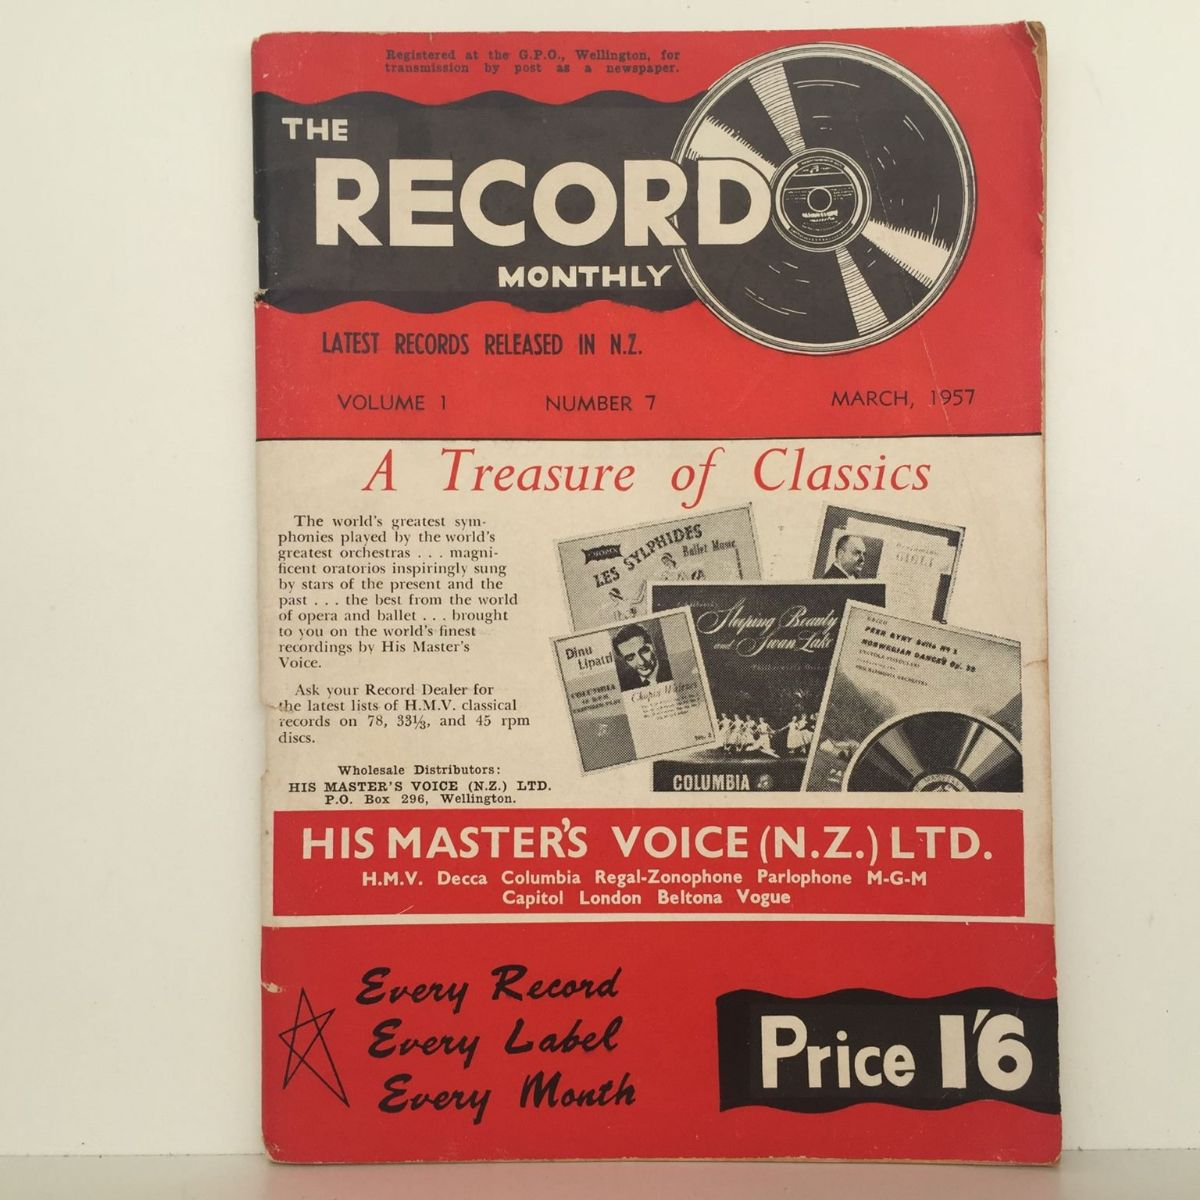 THE RECORD MONTHLY: His Masters Voice Vol 1 #7 March 1957